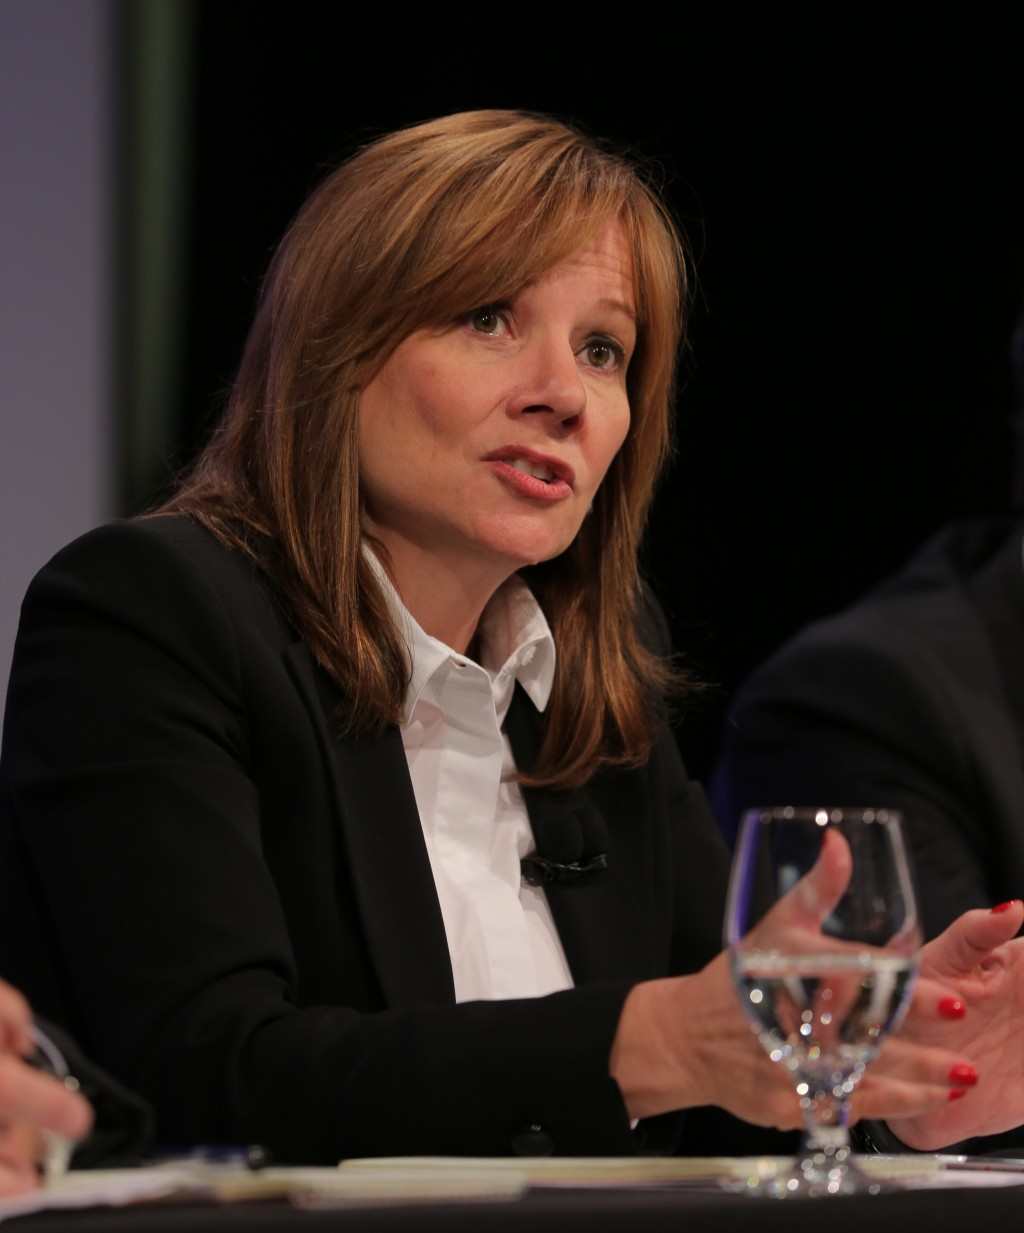 General Motors CEO Mary Barra answers questions from media